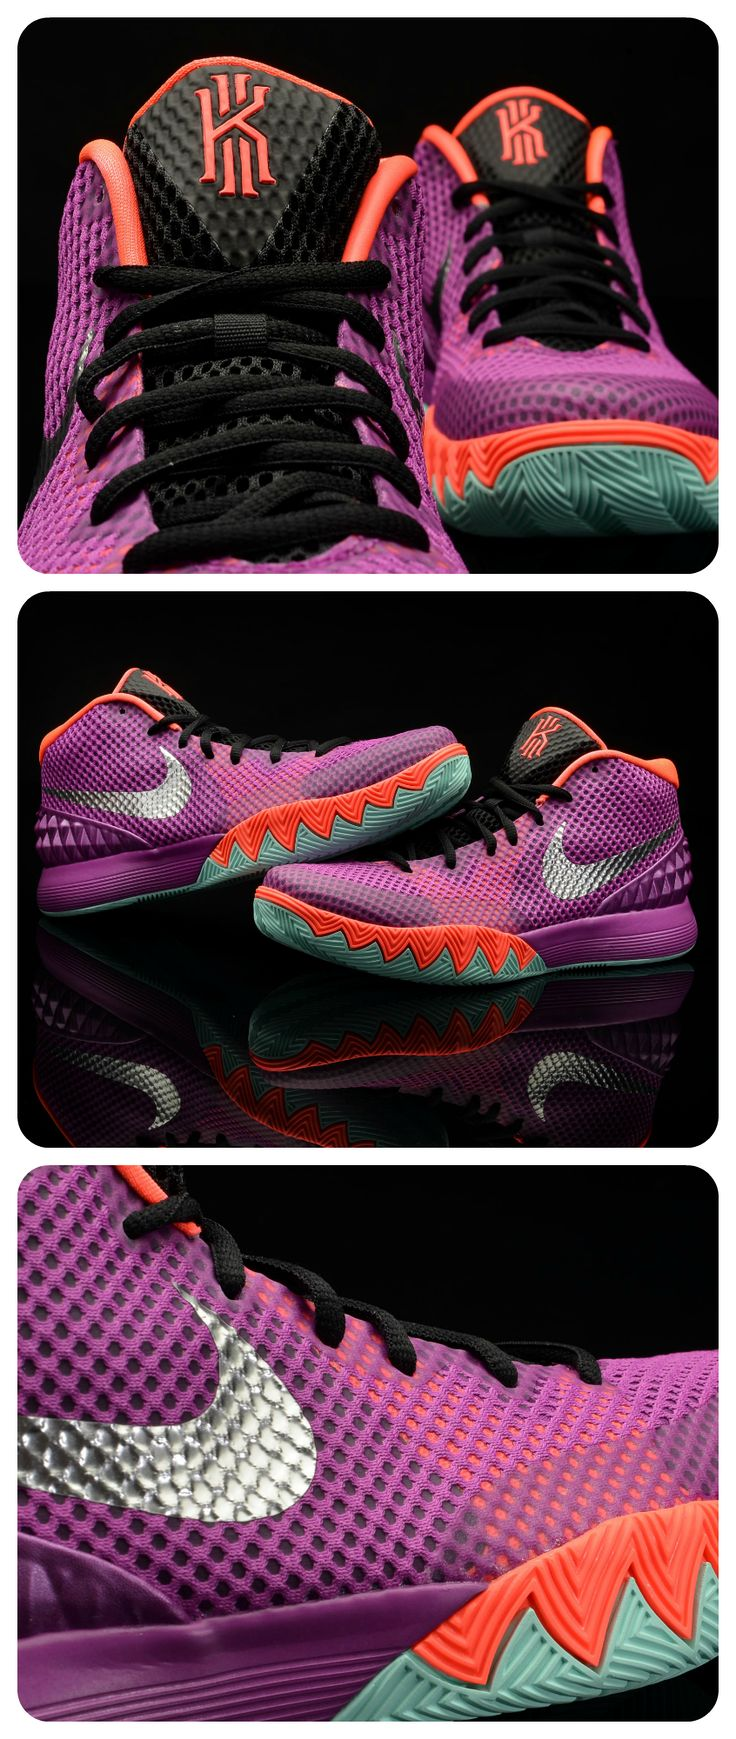 Nike Kyrie 1 Easter edition. #Basketball #Shoes